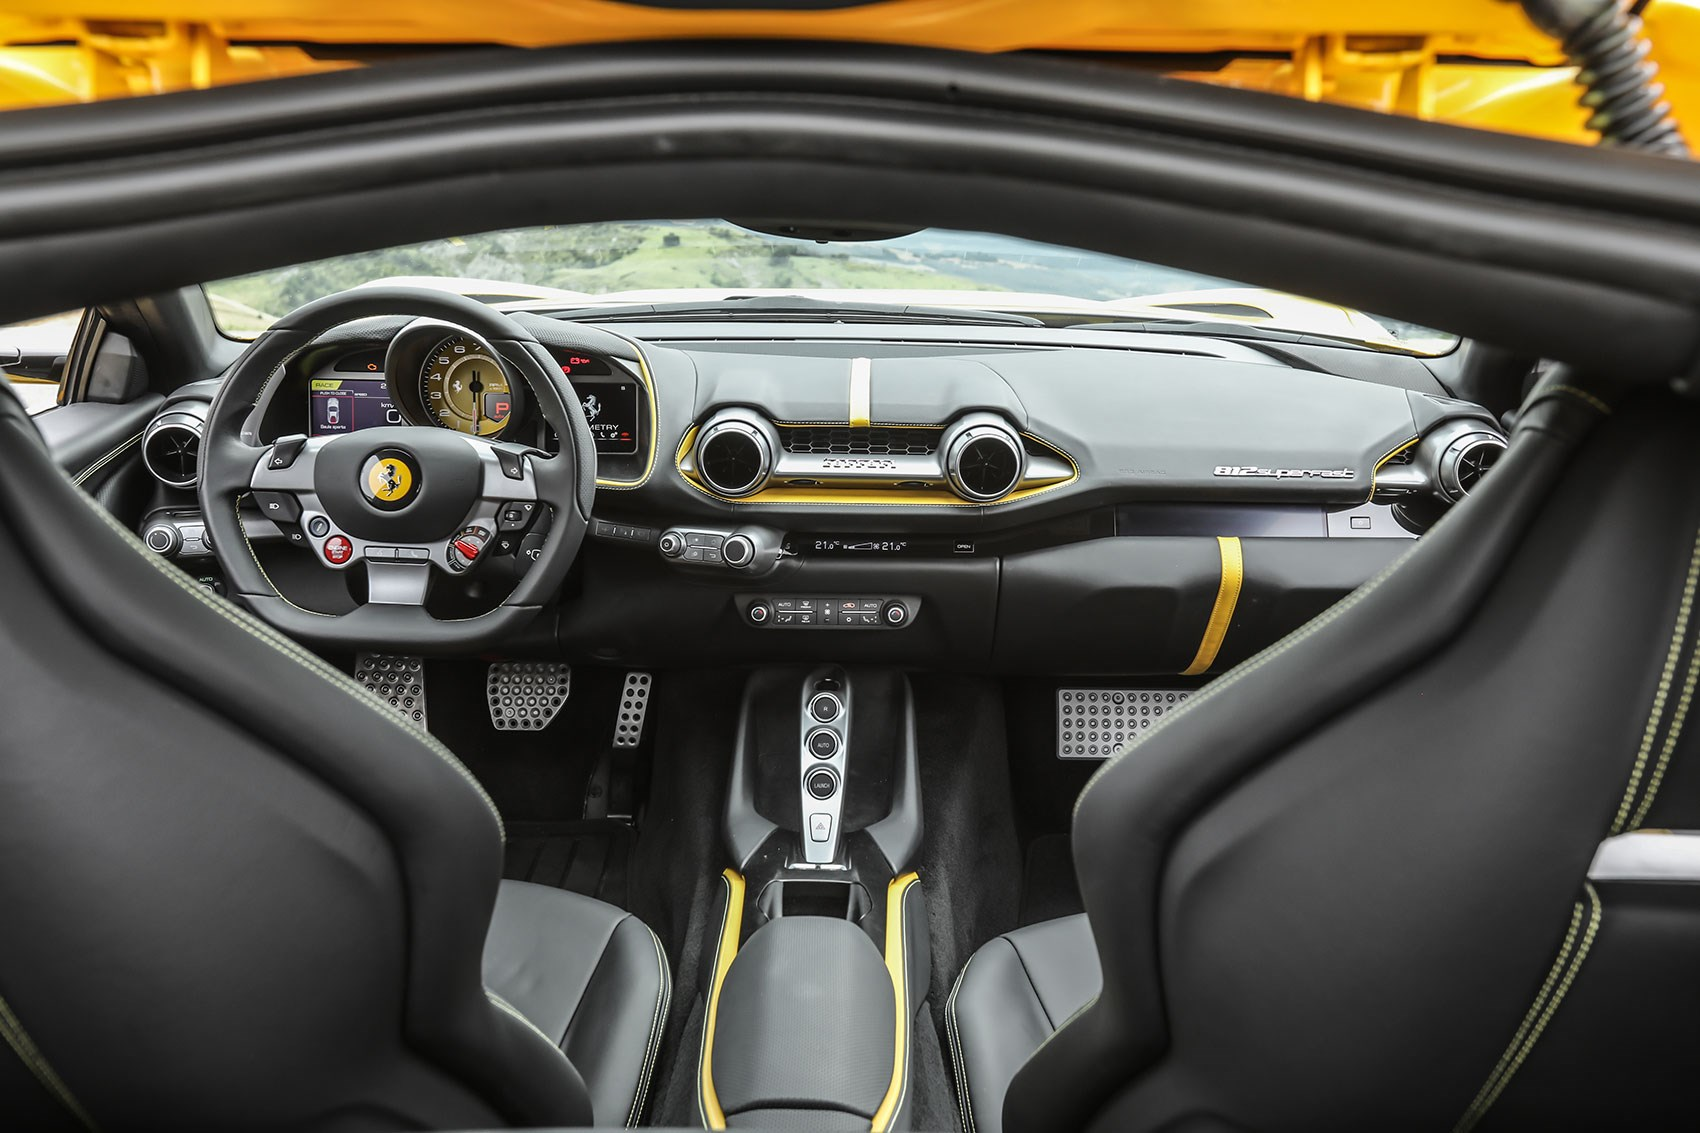 Ferrari 812 Superfast: a two-seater GT